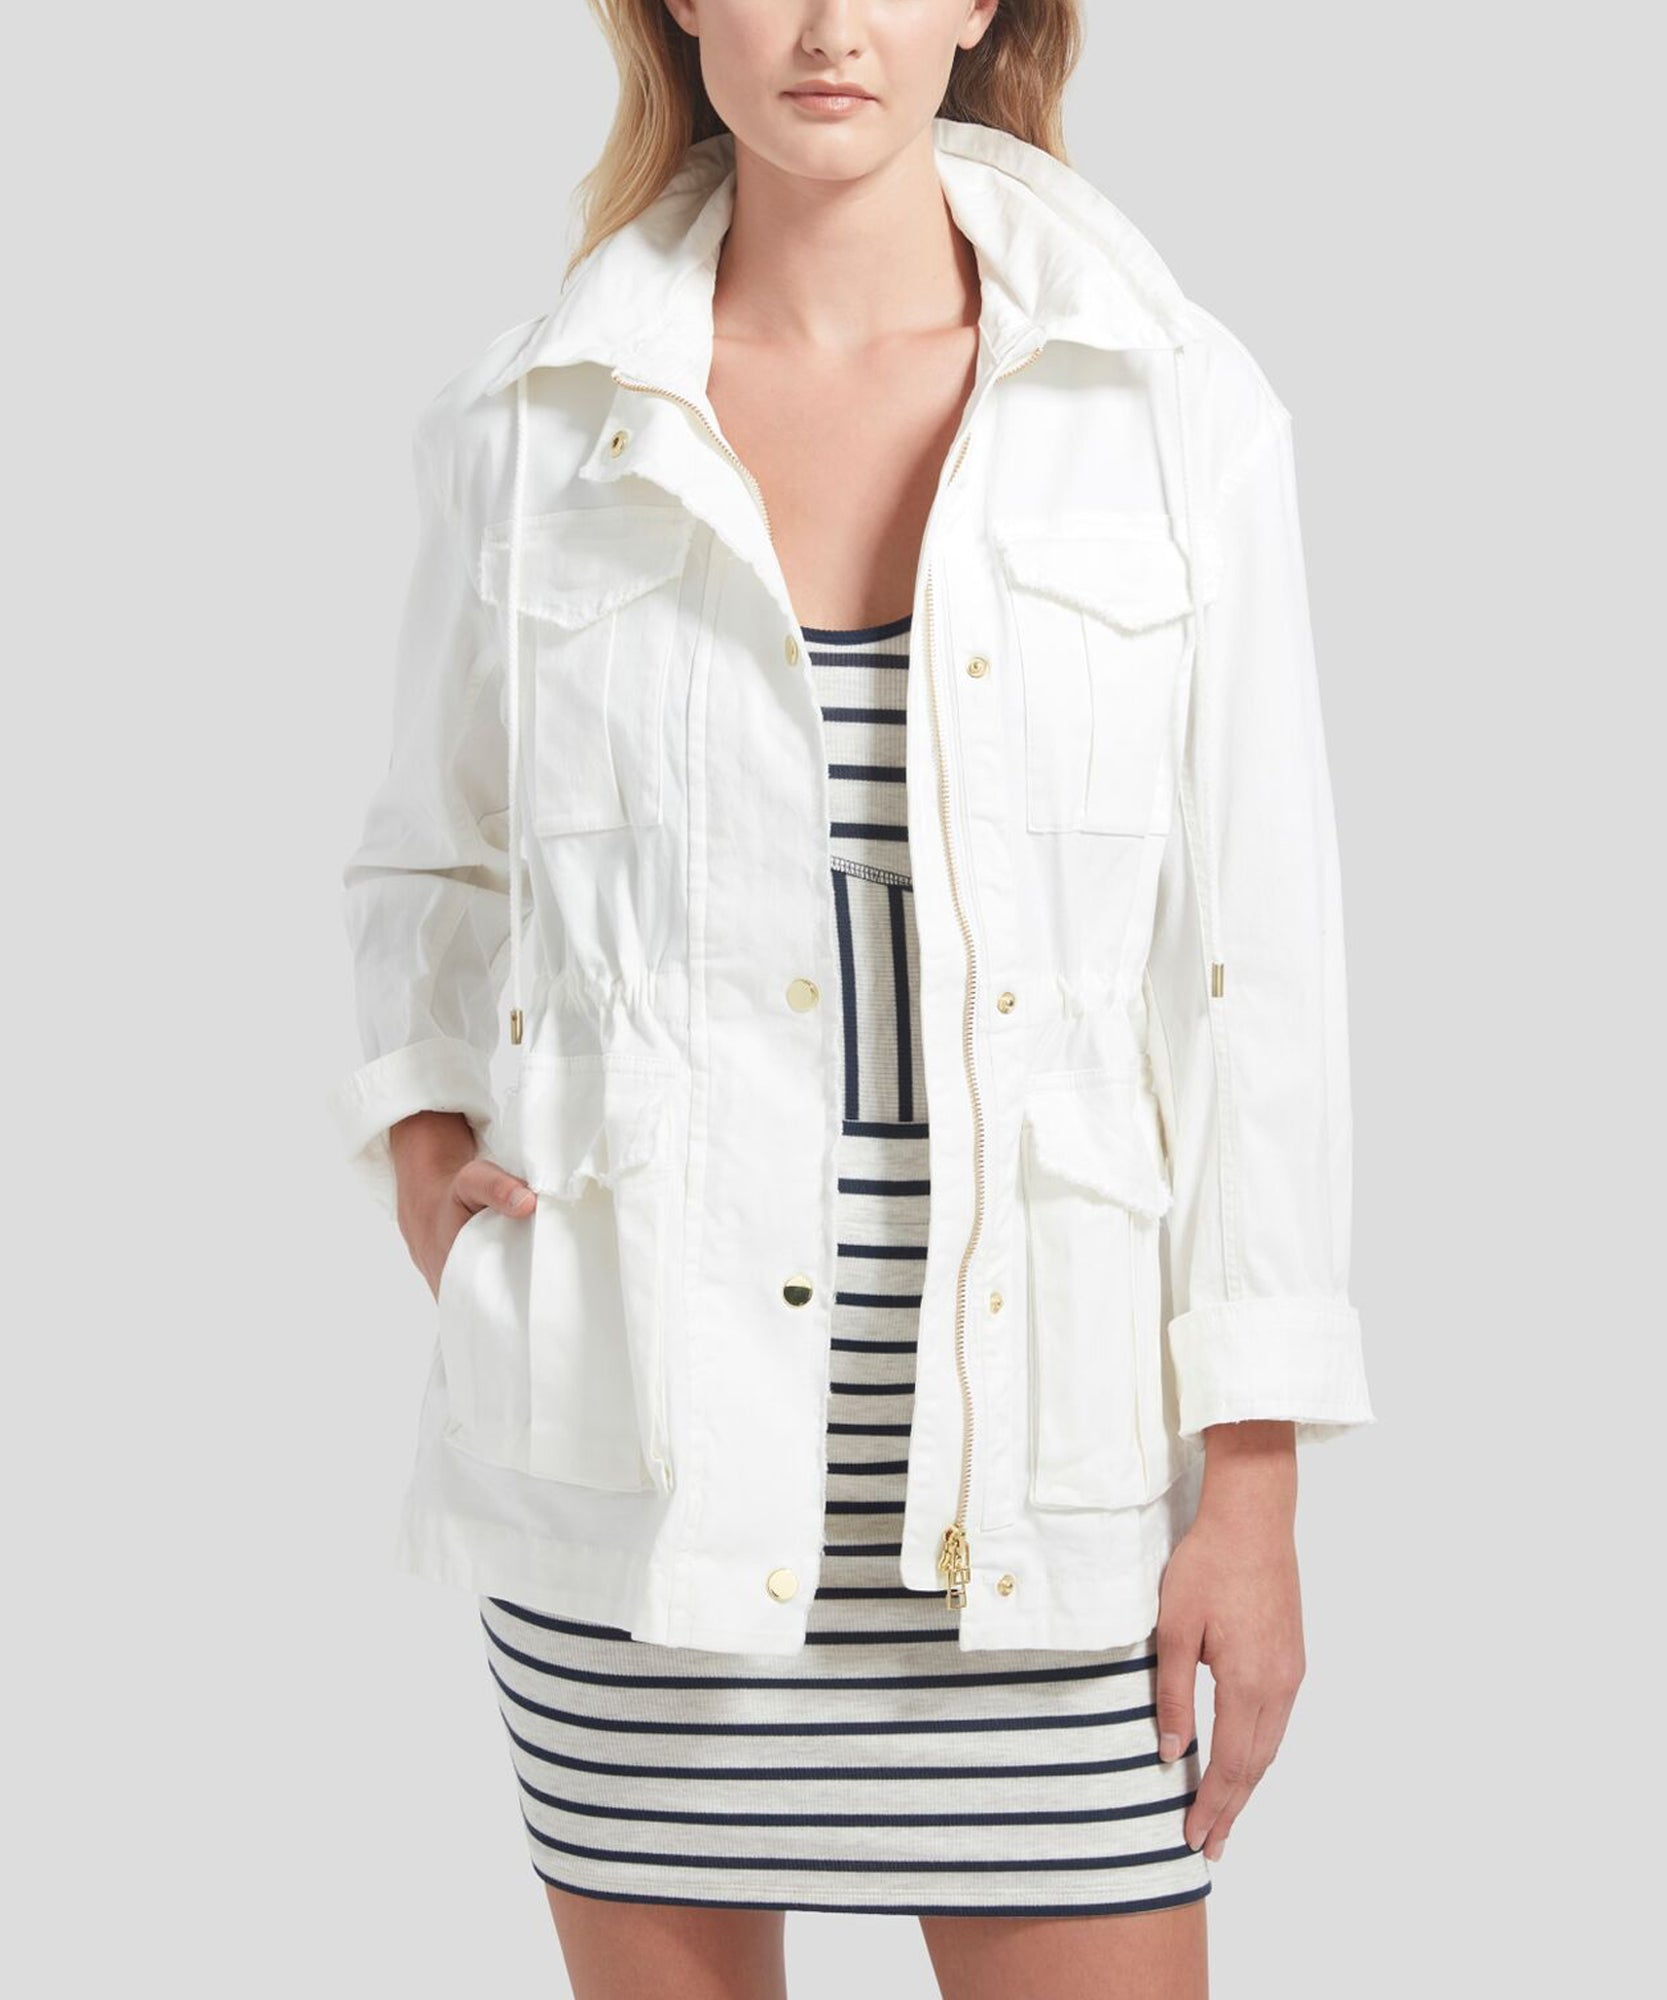 White Field Jacket - Women's Luxe Jacket by ATM Anthony Thomas Melillo